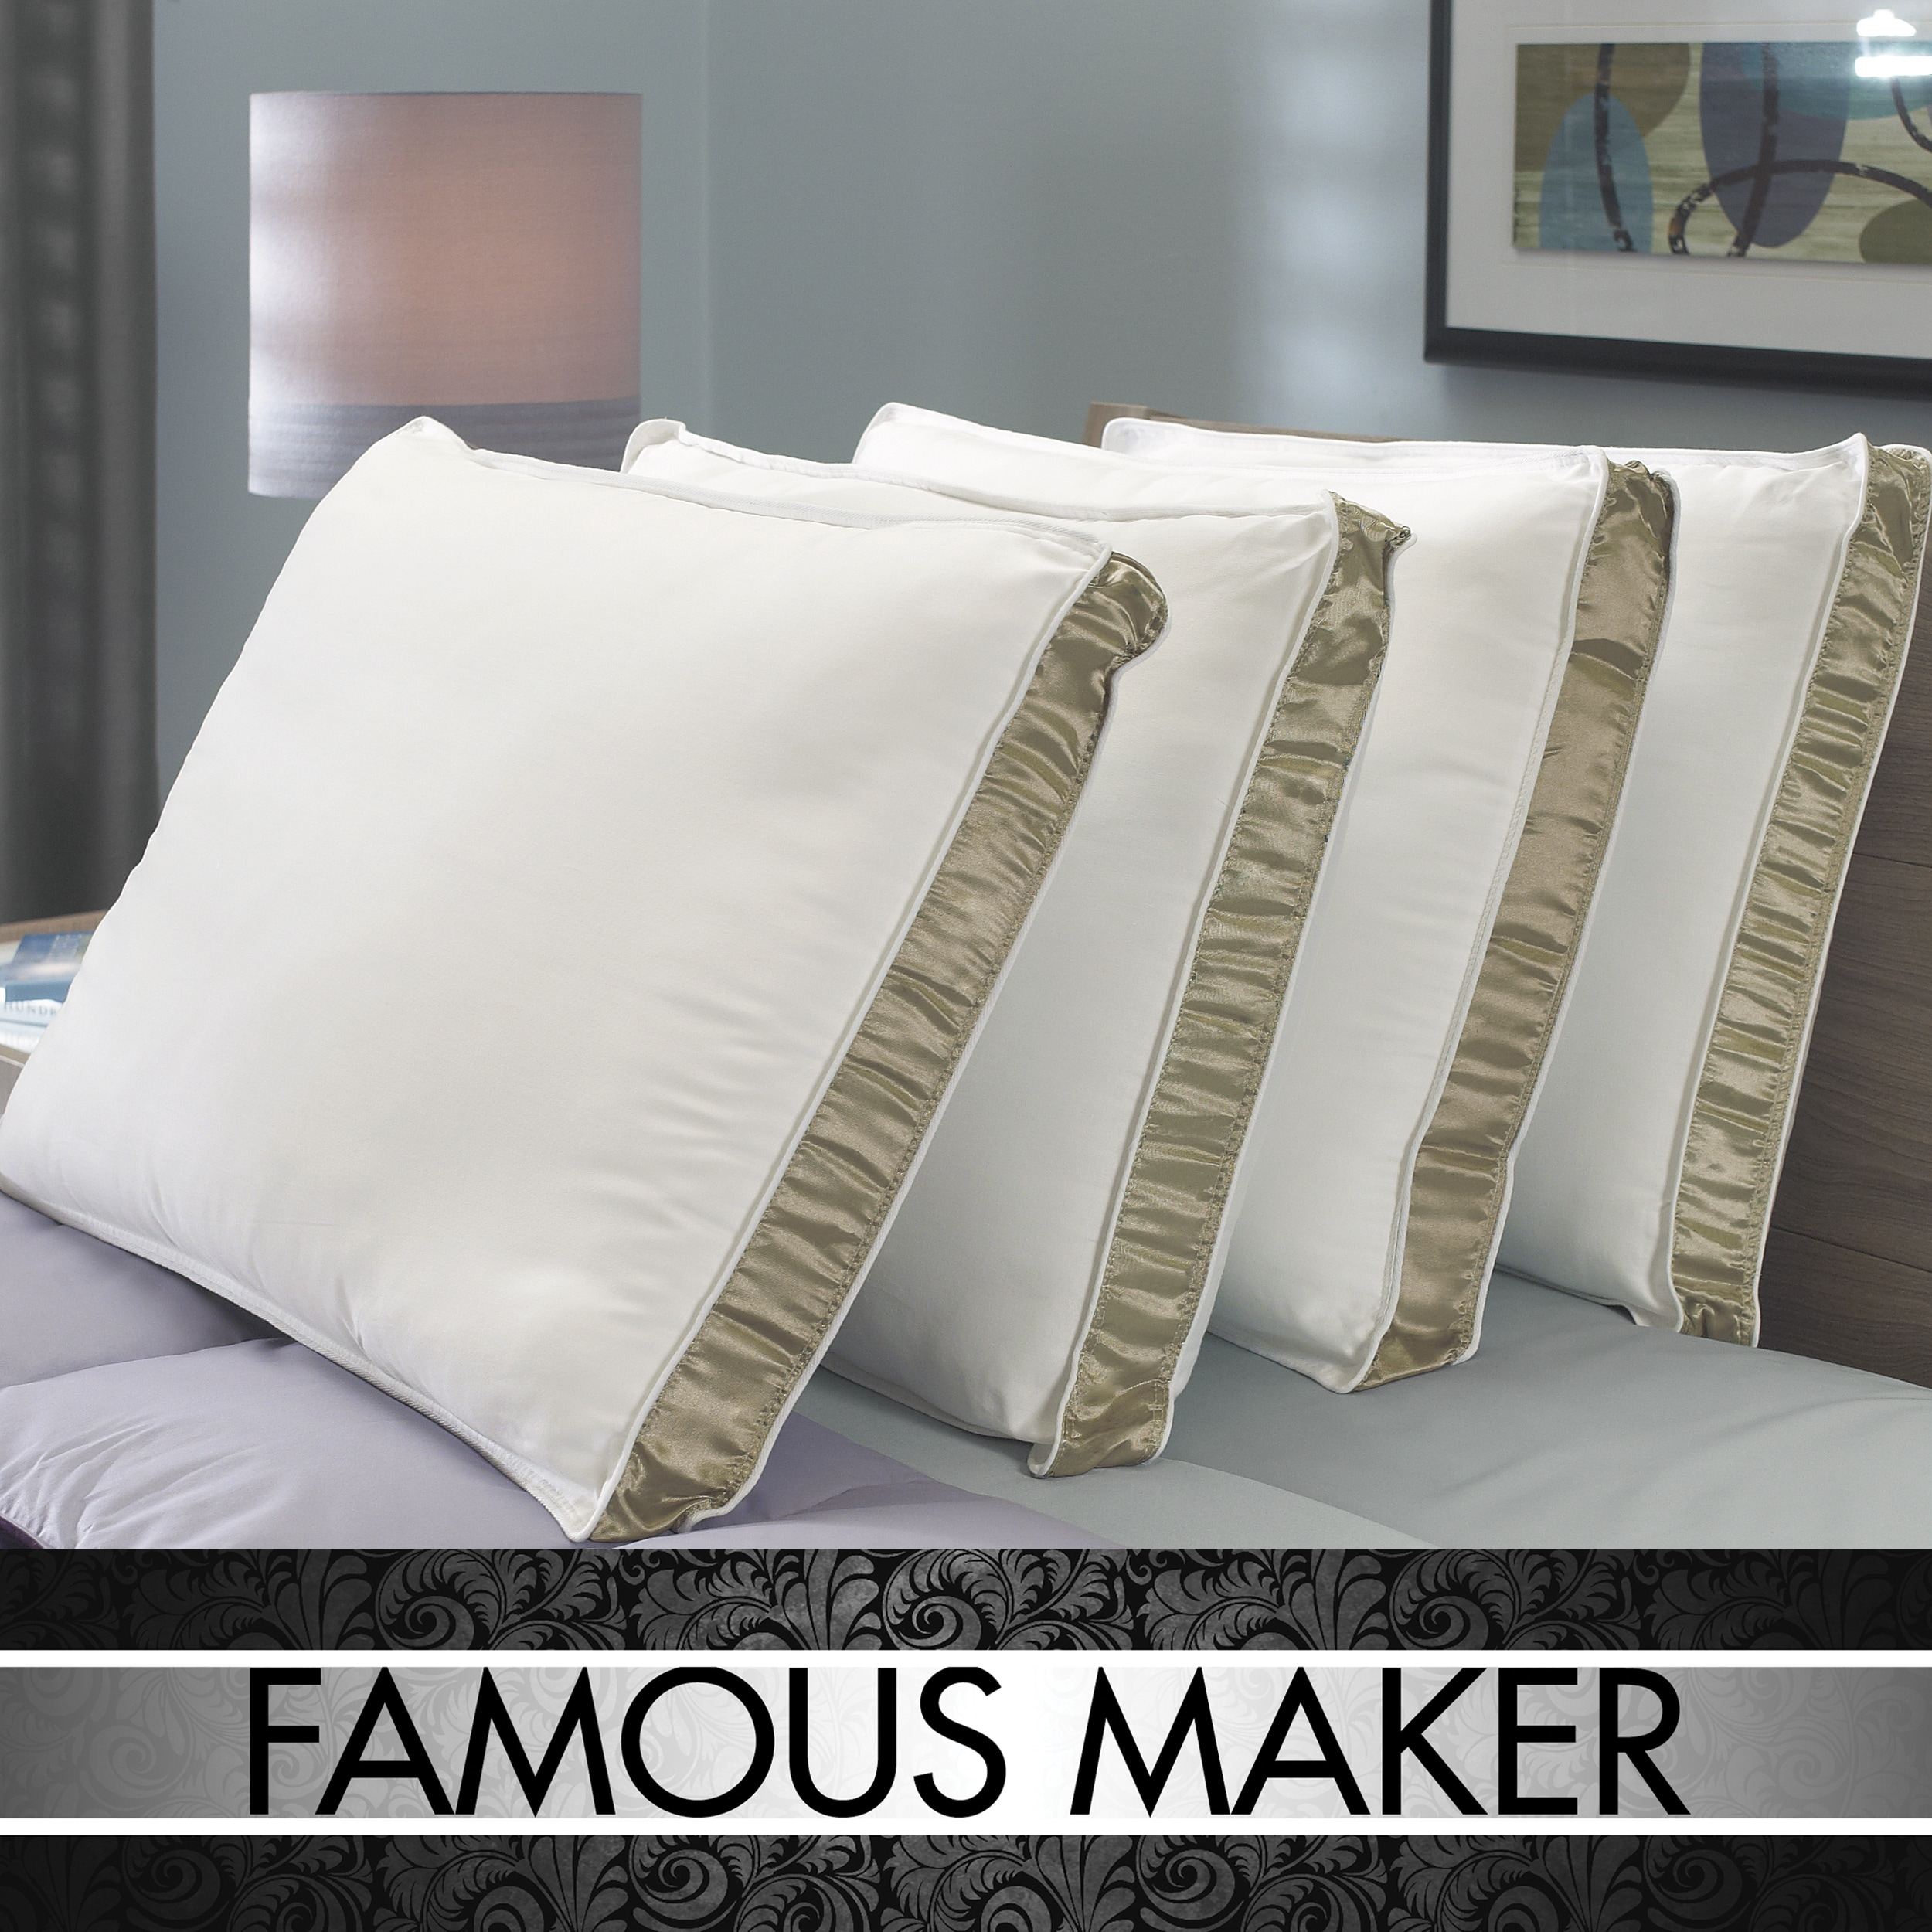 Famous Maker Plush Comfort Antimicrobial 300 Thread Count Pillows (Set of 4)